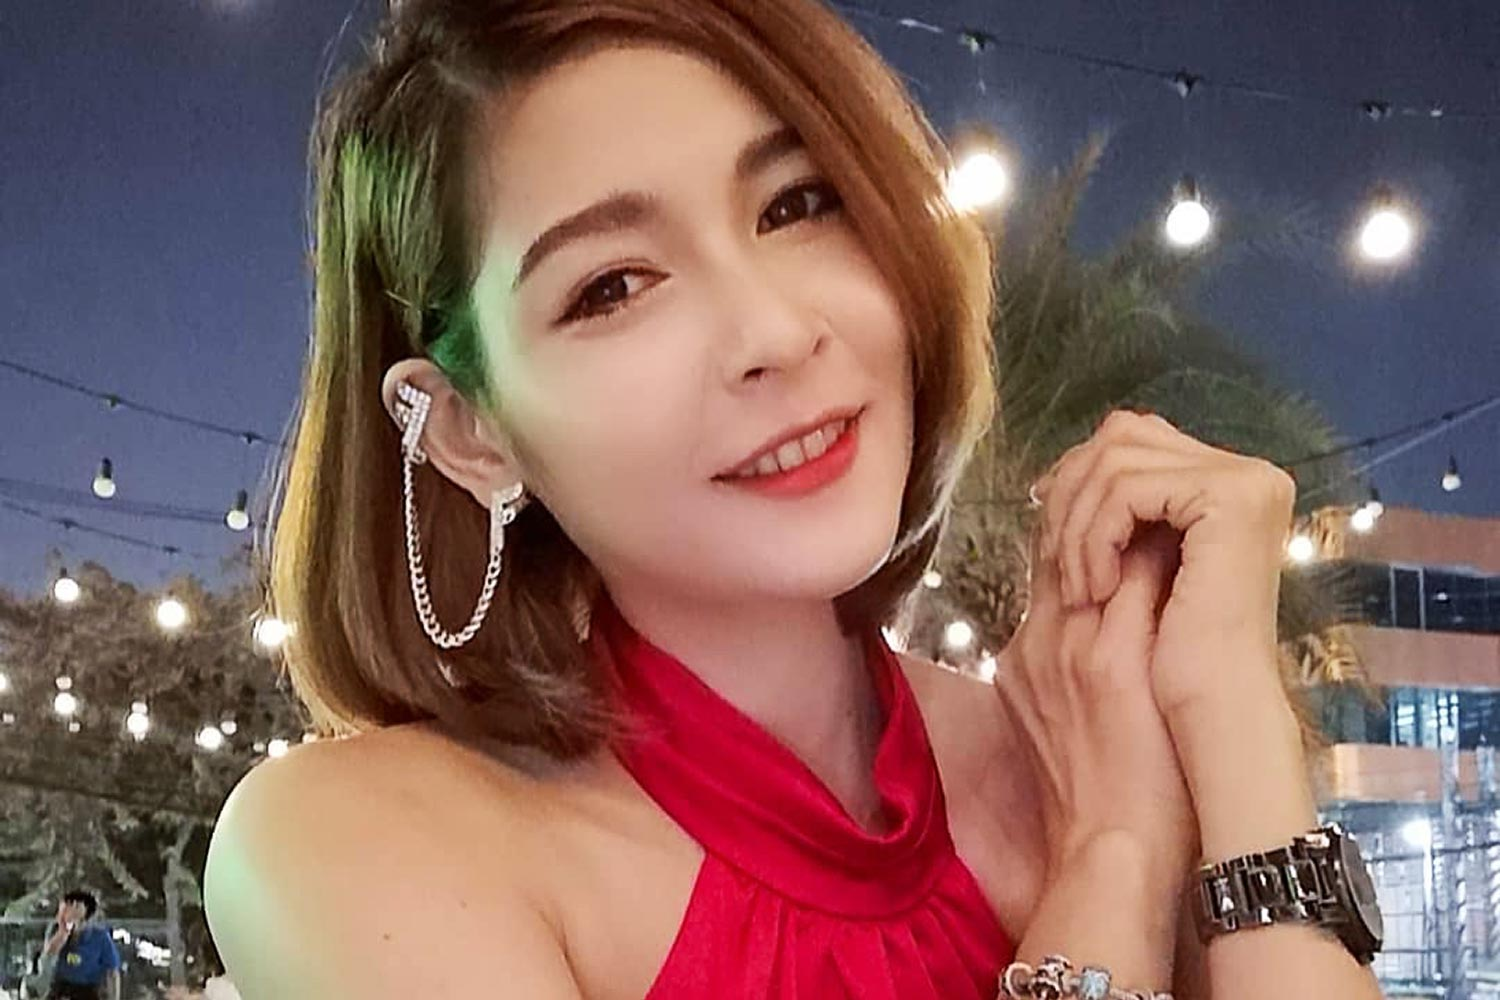 A private hospital will be charged over the death of product presenter Whitchayaporn Visessombut, as police continue to investigate the party where she was working before being brought unconscious to the hospital. (Photo: wawa_manika Instagram)